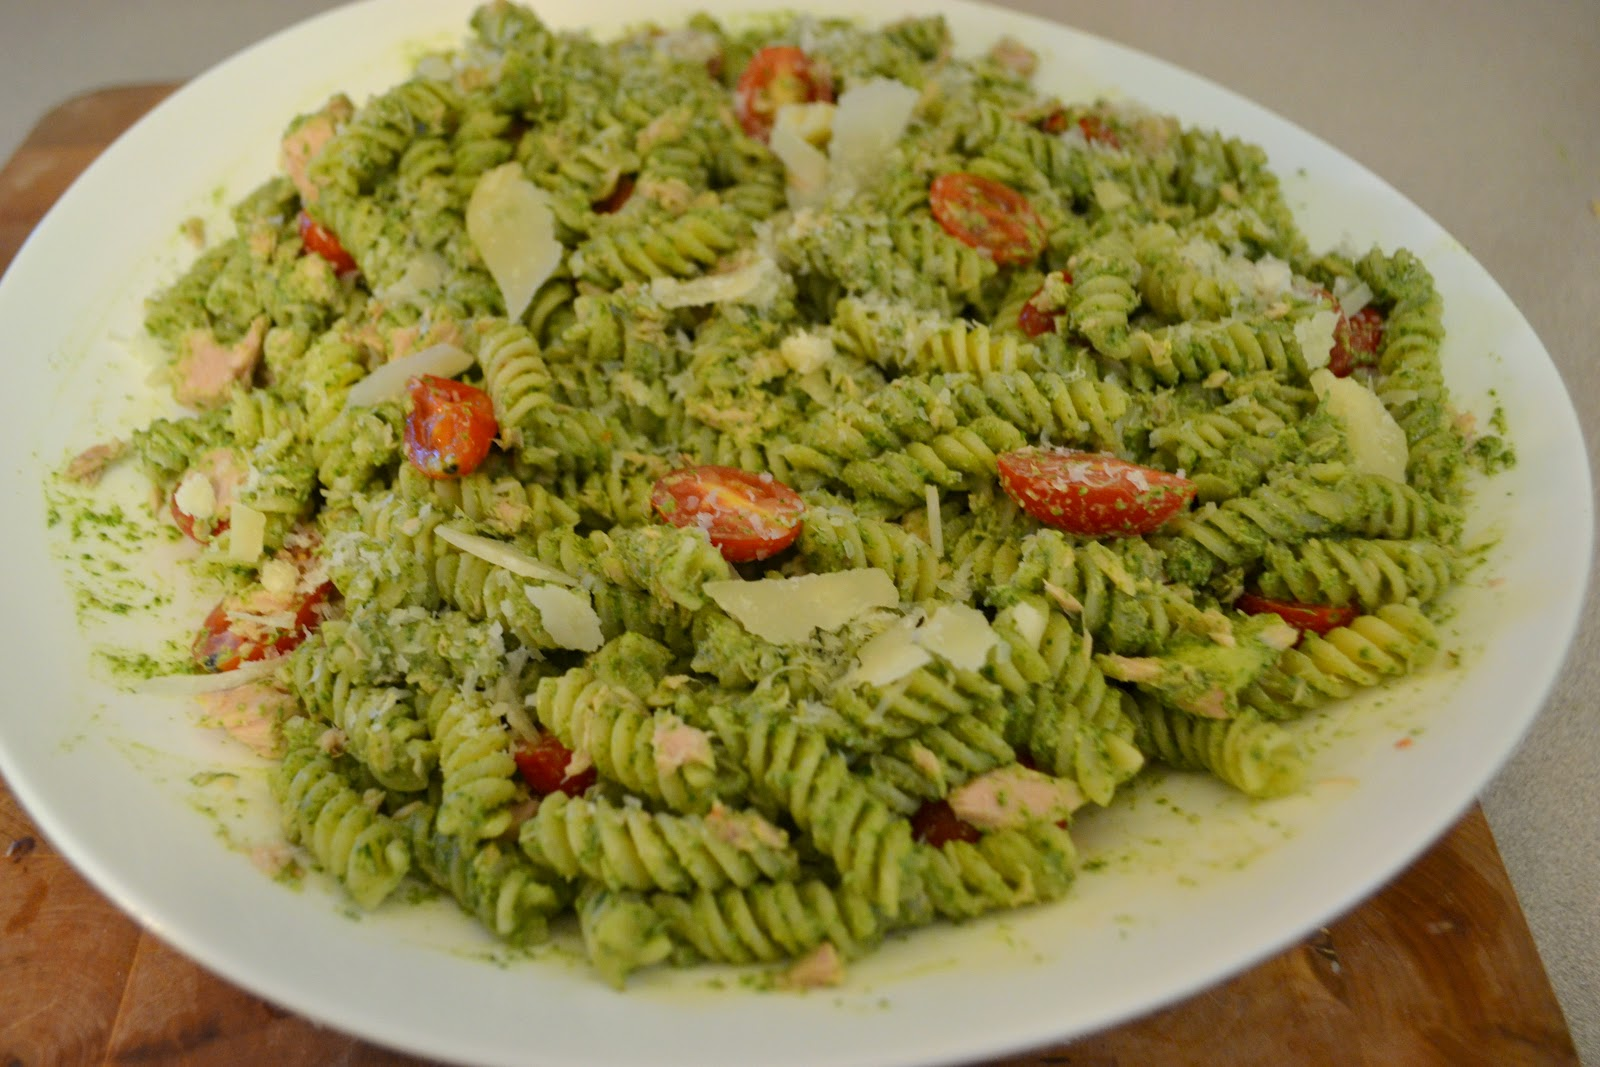 ... and Vine: Tomato and Tuna Pasta with Toasted Walnut and Spinach Pesto